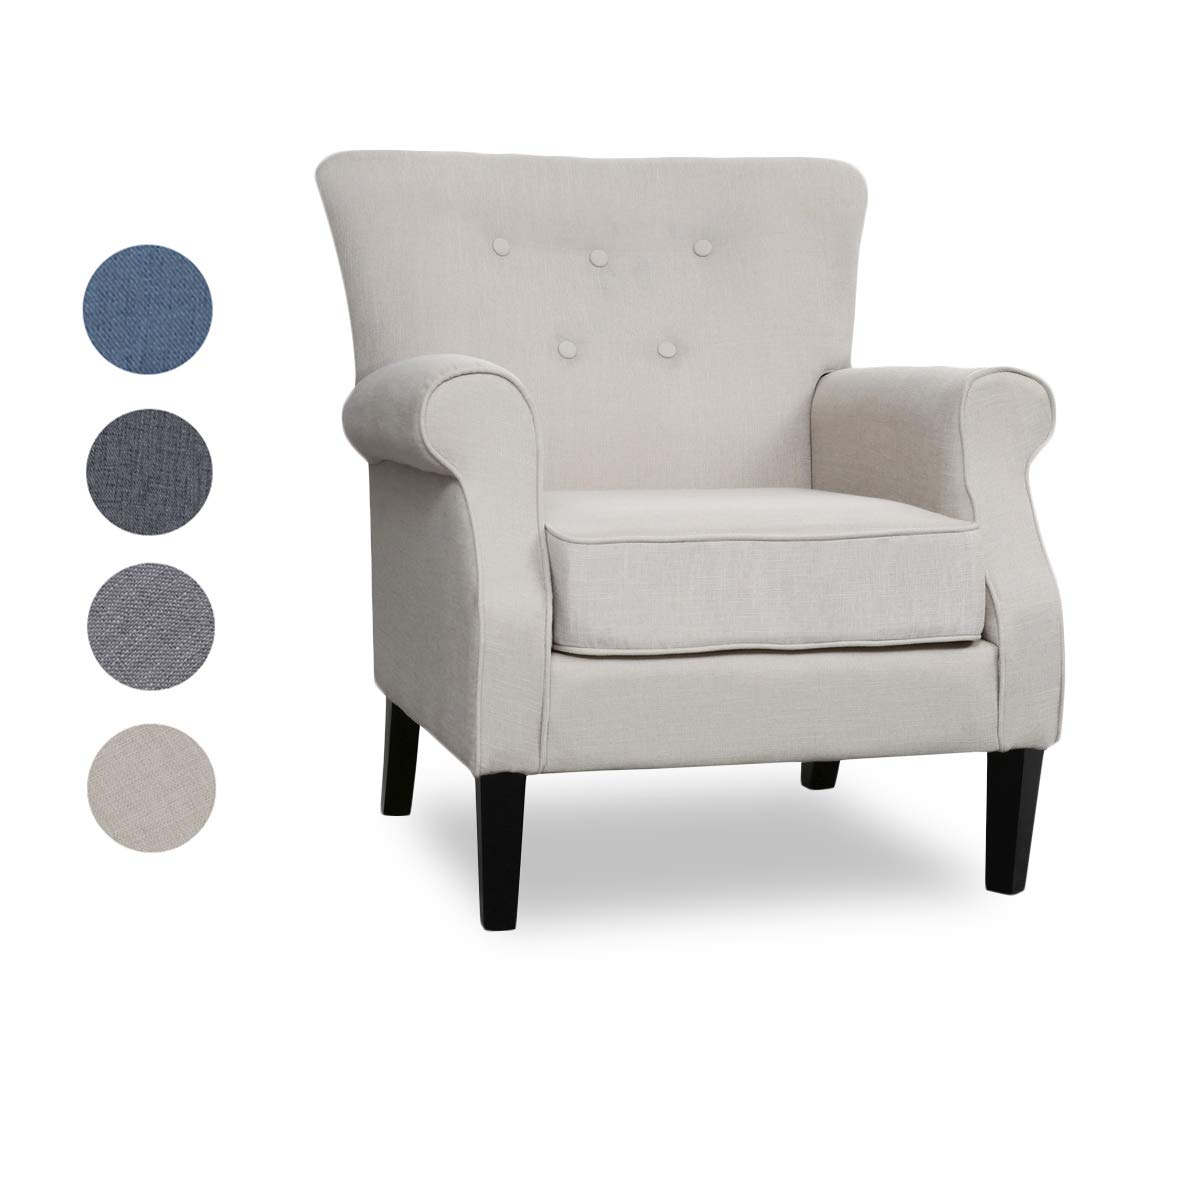 Top Space Accent Chair Sofa Mid Century Upholstered Roy Arm Single Sofa Modern Comfy Furniture for Living Room,Bedroom,Club,Office 1 PCs, White